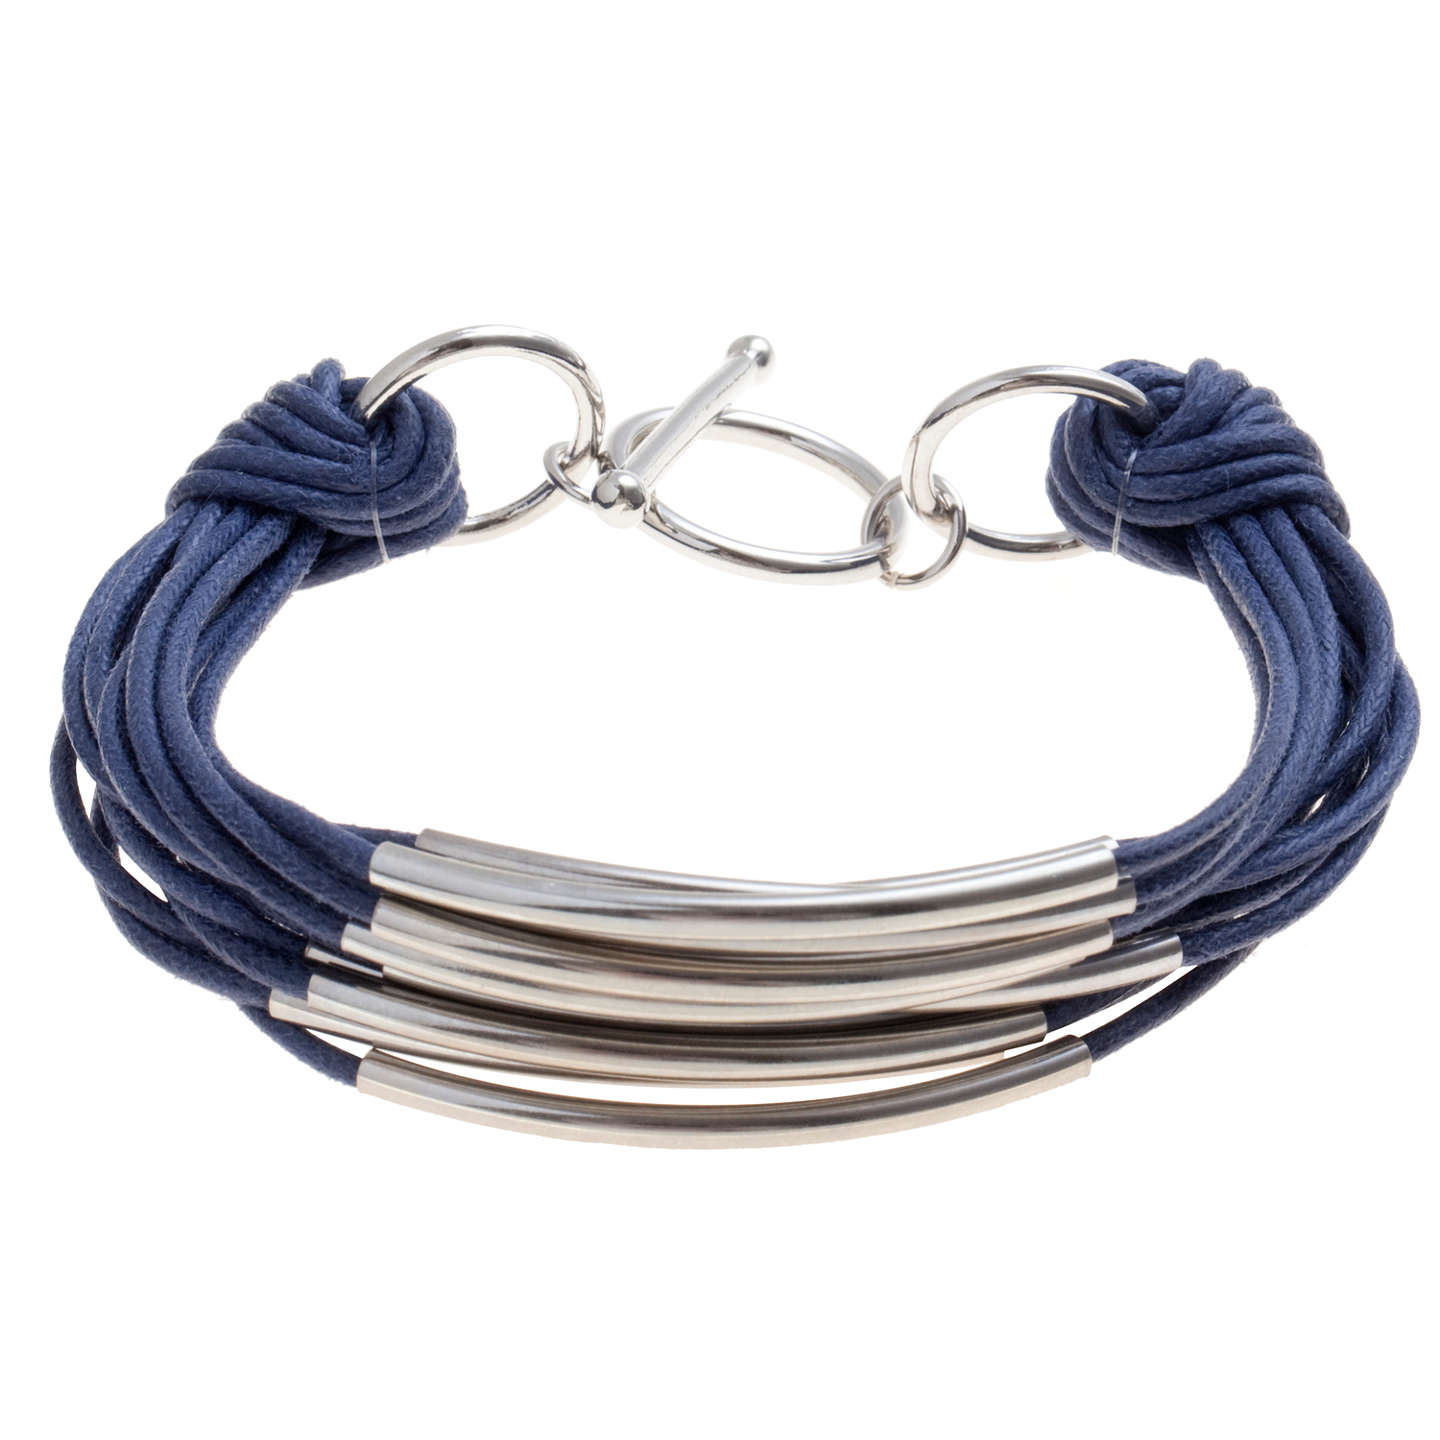 stainless cord products sport jewelry collections fashion leather survival anchor men parachute frontpage style camping navy classic steel bracelet mkendn